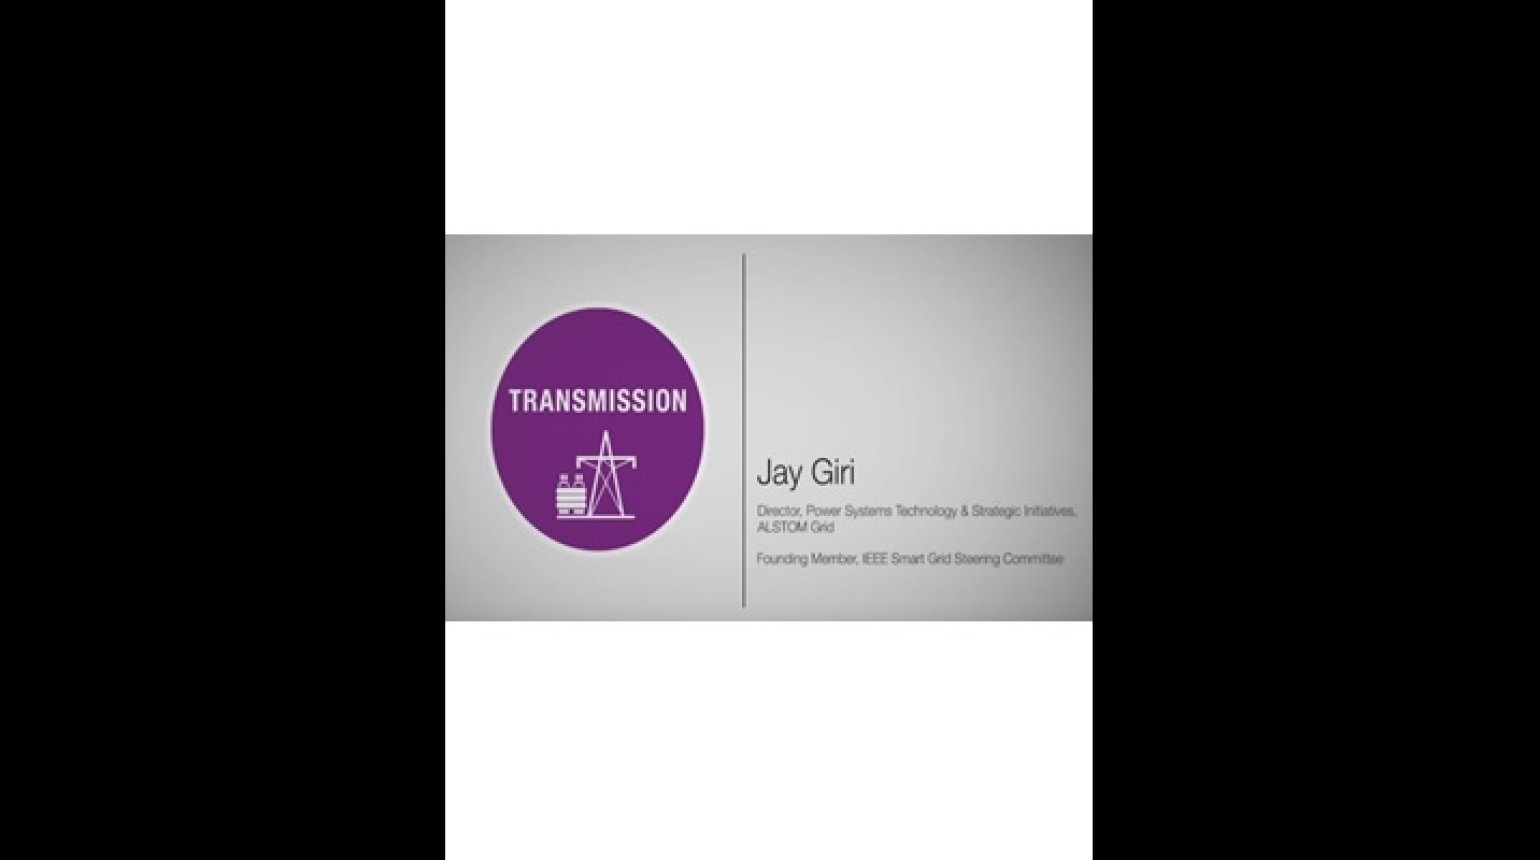 Transmission Domain - Jay Giri